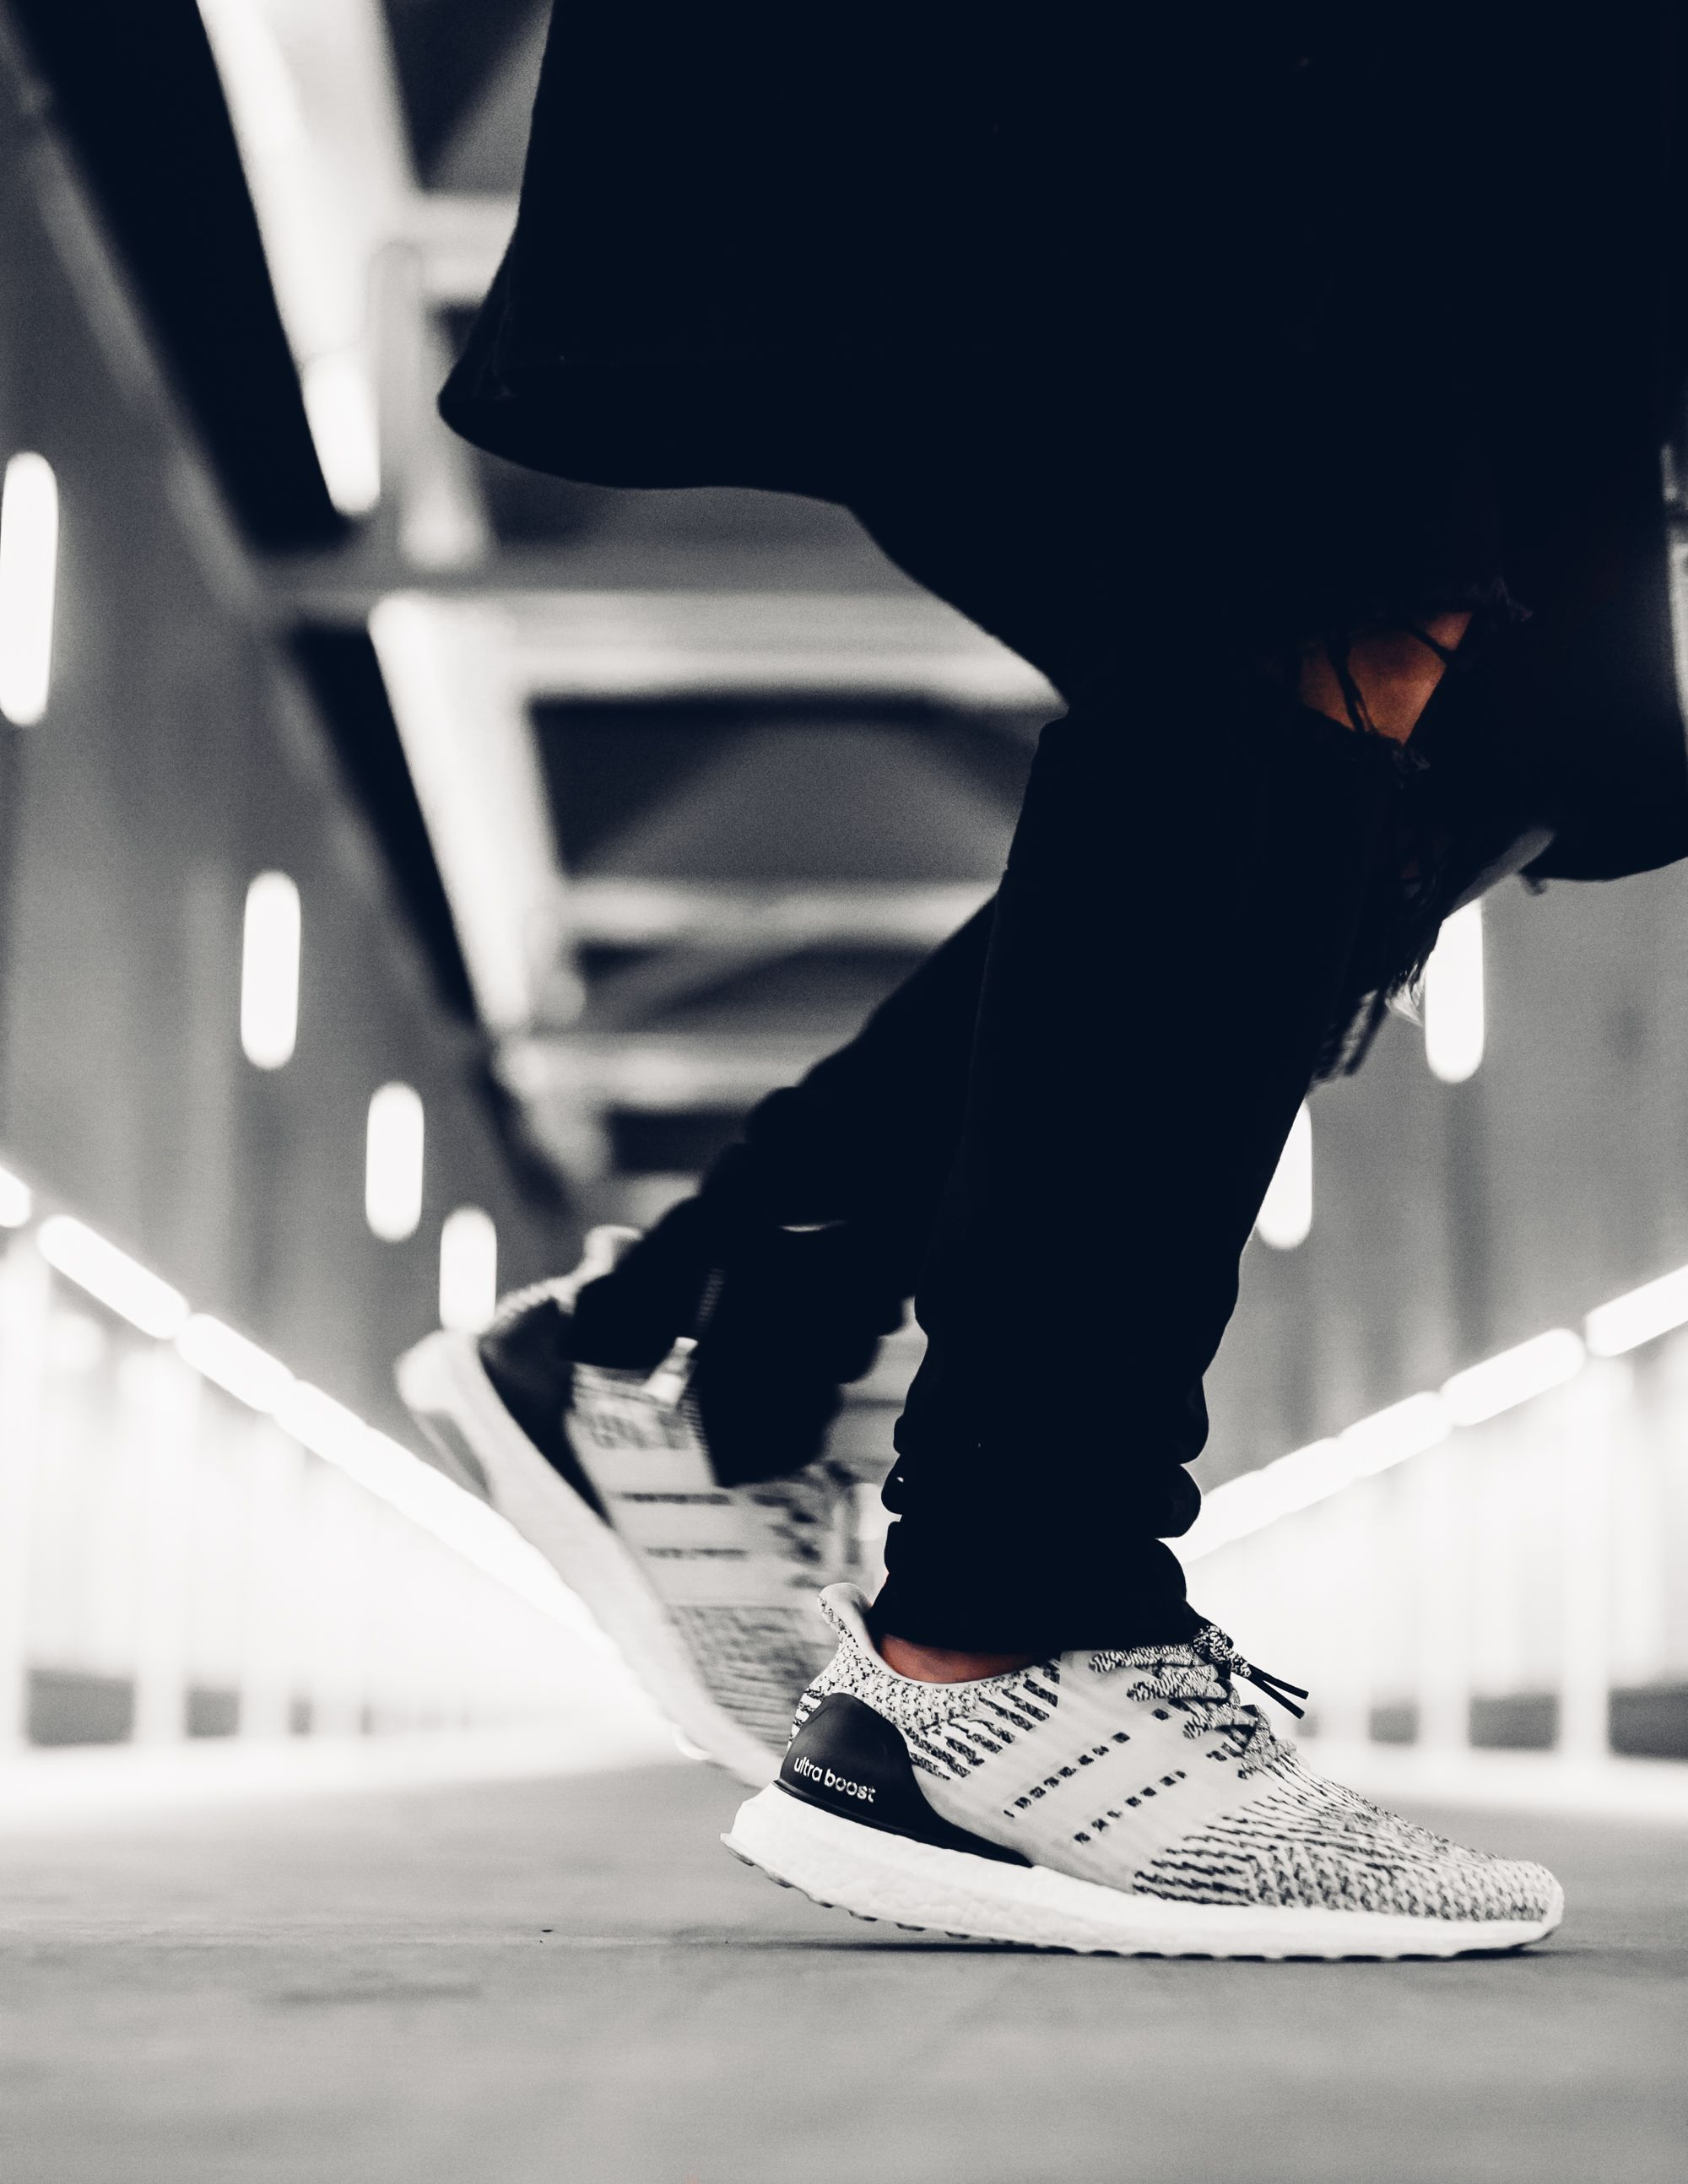 b99716ceab0 An Exclusive Closer Look at the adidas Ultra Boost 3.0